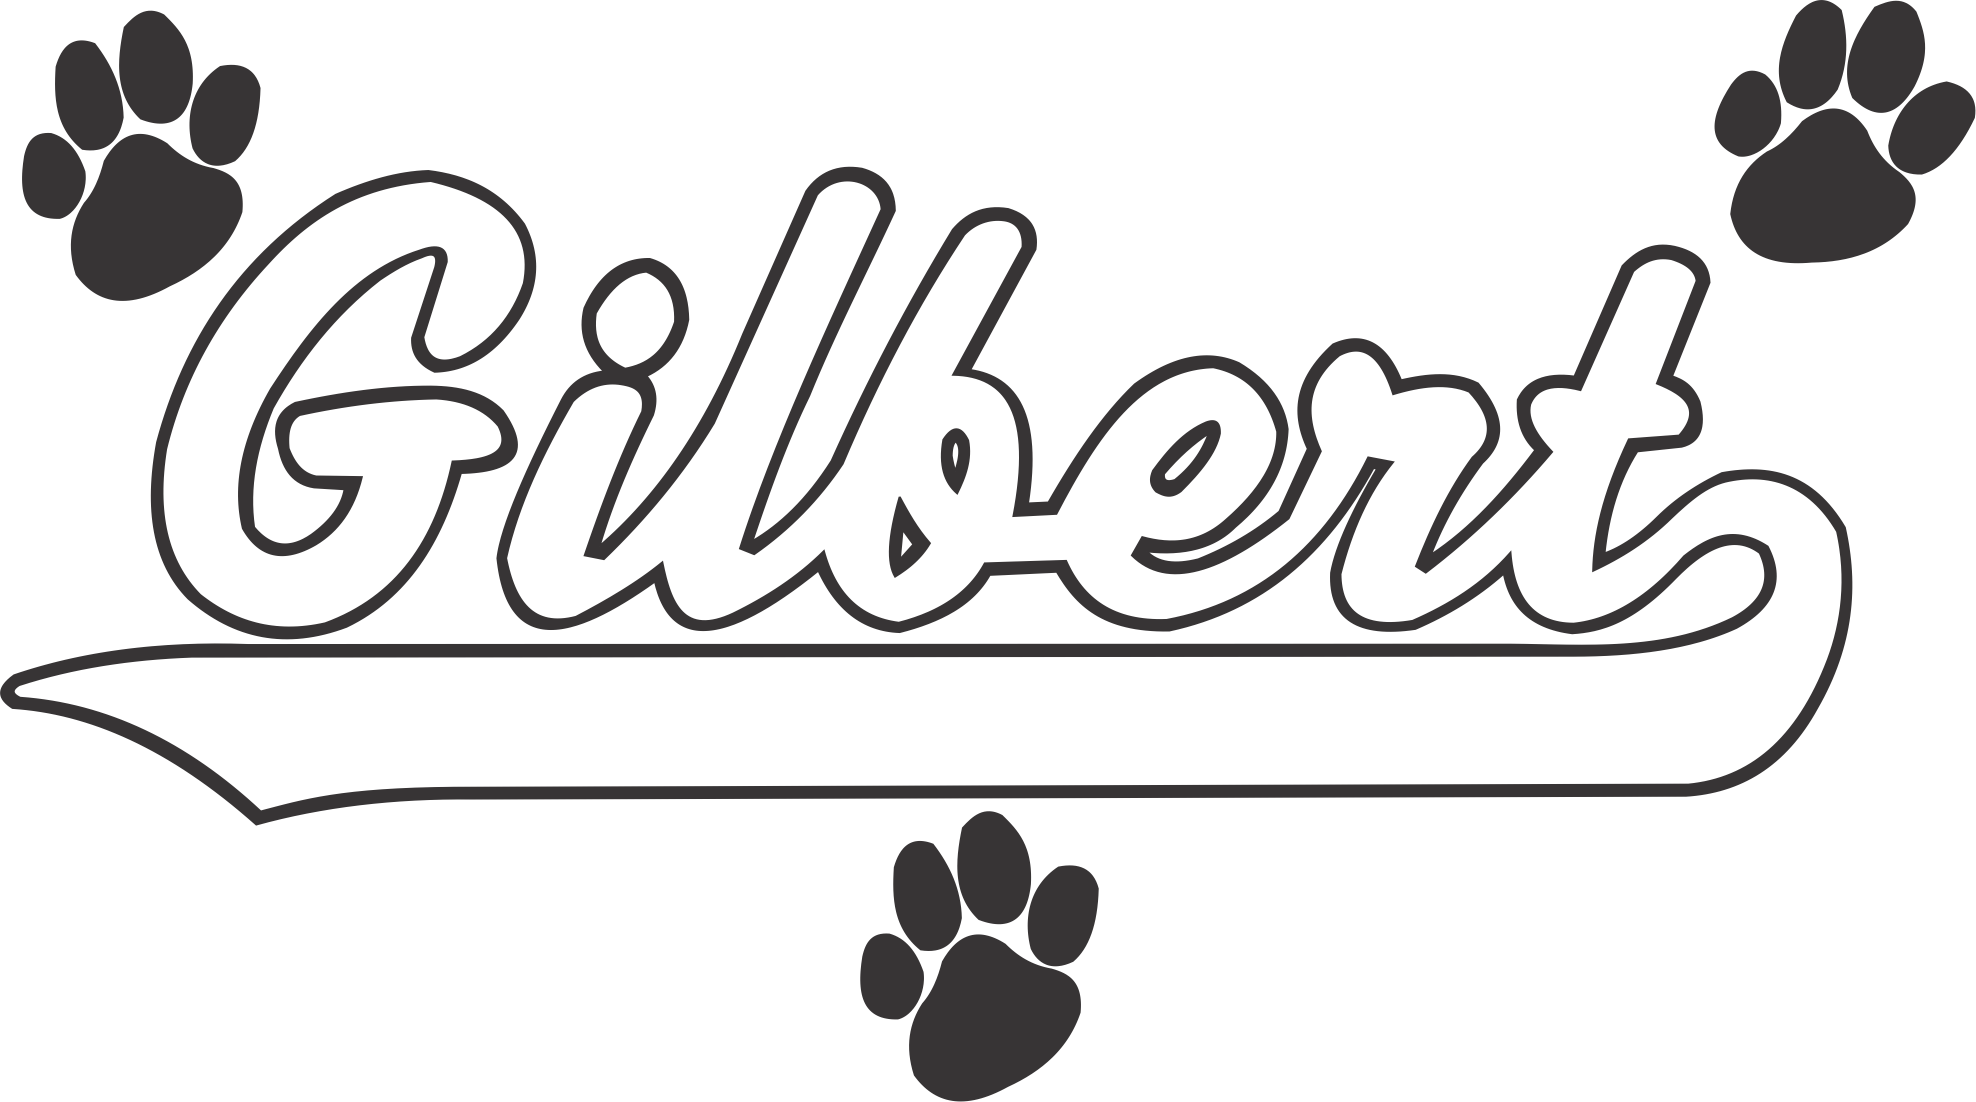 Baseball with flame in tail black and white clipart png transparent stock Phoenix Script with Tail and Paws - USA Custom Jackets png transparent stock